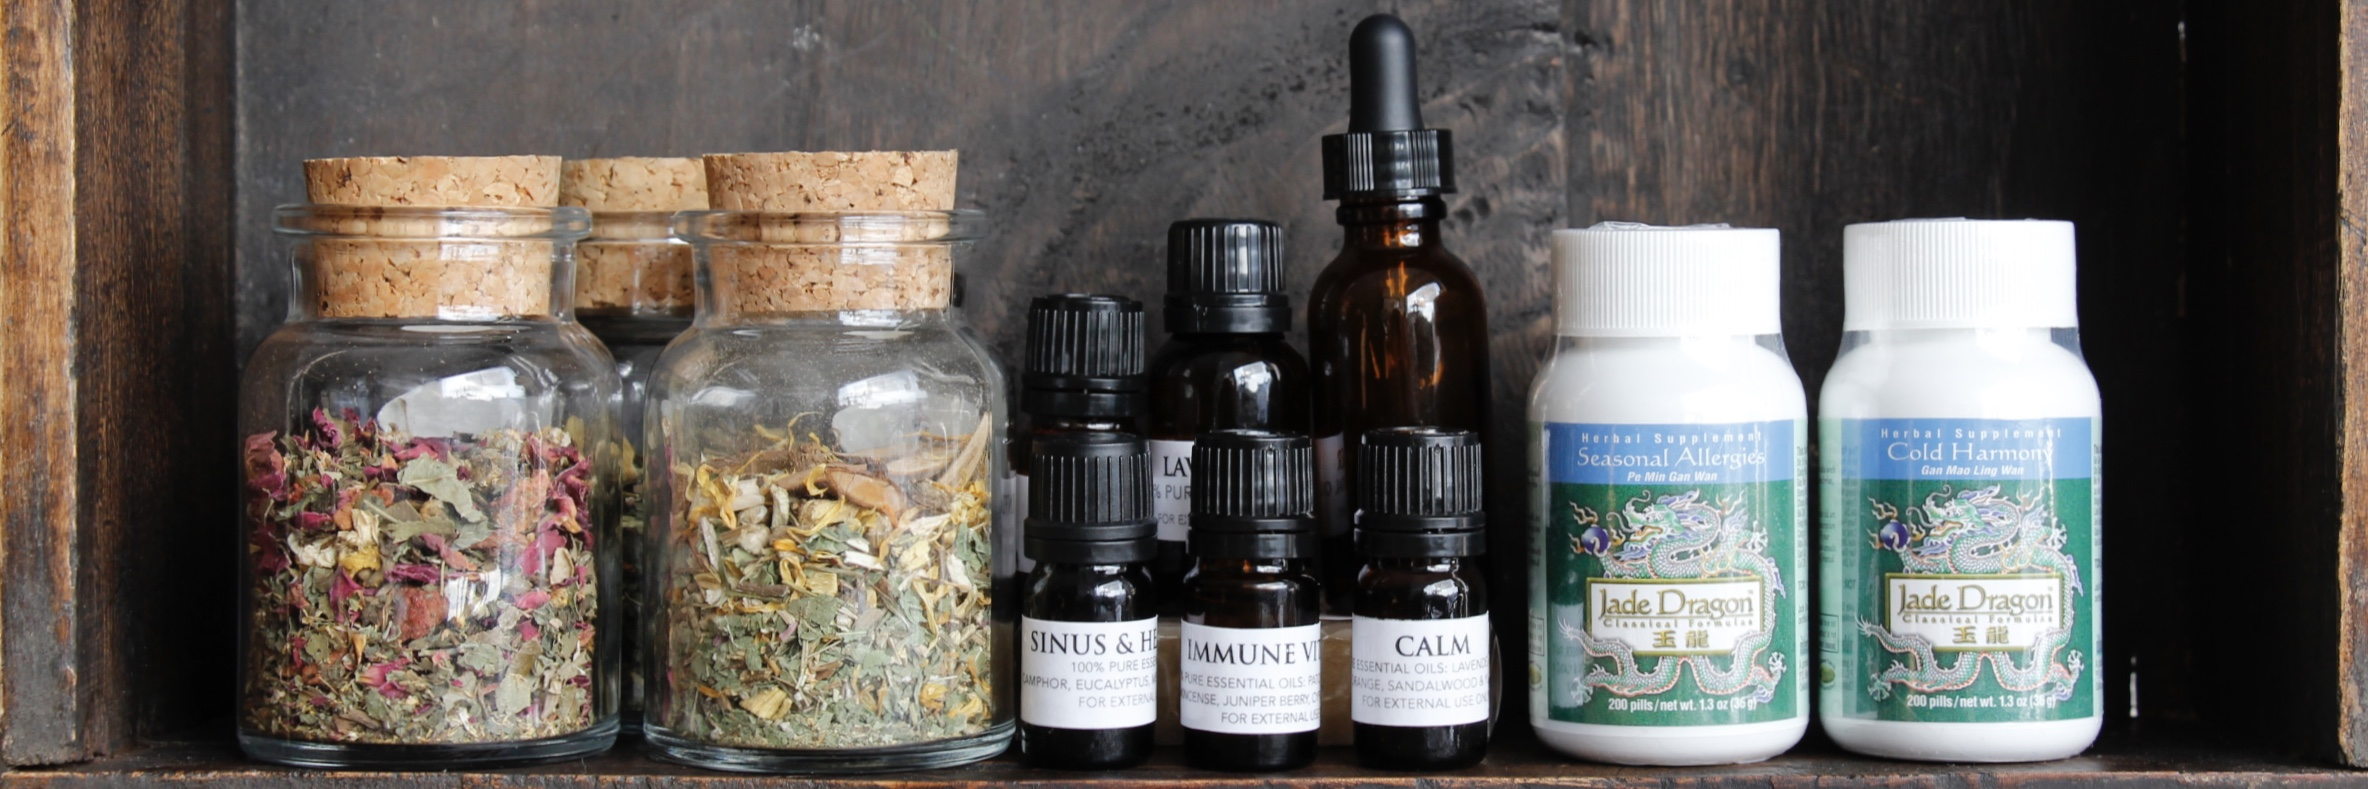 Holistic Remedies Medicine Cabinet